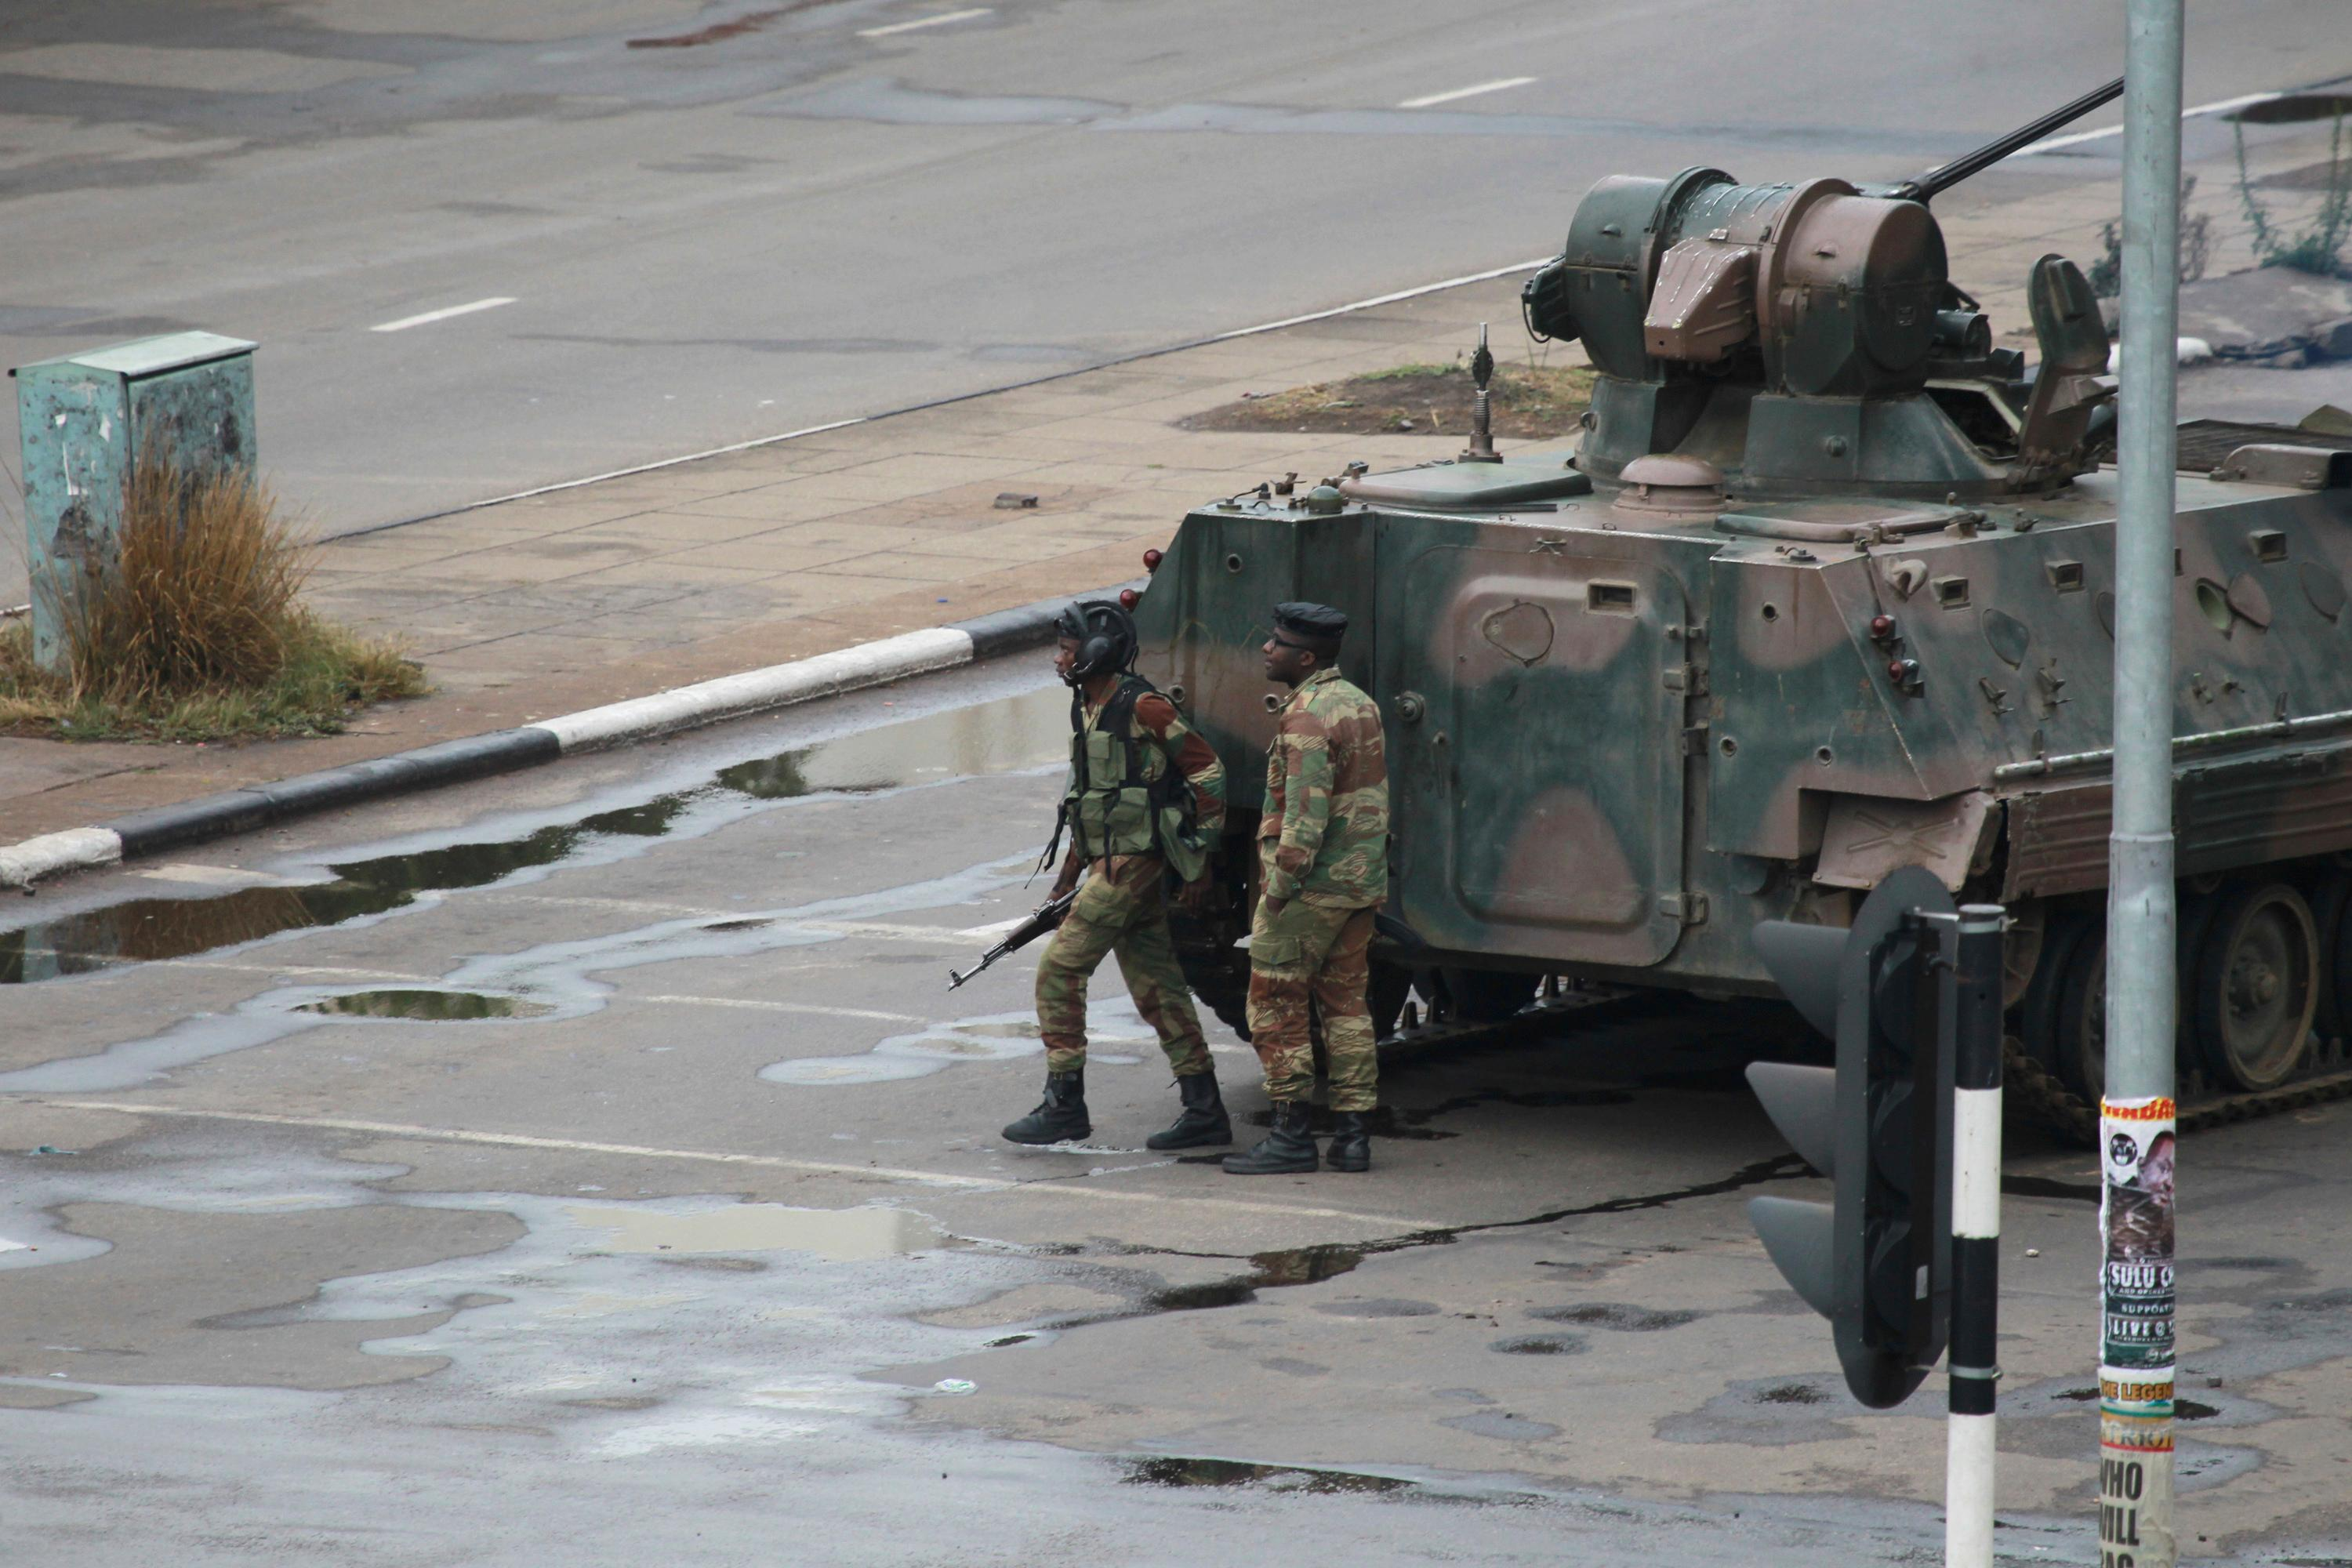 "A military tank is seen with armed soldiers on the road leading to President Robert Mugabe's office in Harare, Zimbabwe Wednesday, Nov. 15, 2017. Overnight, at least three explosions were heard in the capital, Harare, and military vehicles were seen in the streets. On Monday, the army commander had threatened to ""step in"" to calm political tensions over the 93-year-old Mugabe's possible successor. (AP Photo/Tsvangirayi Mukwazhi)"